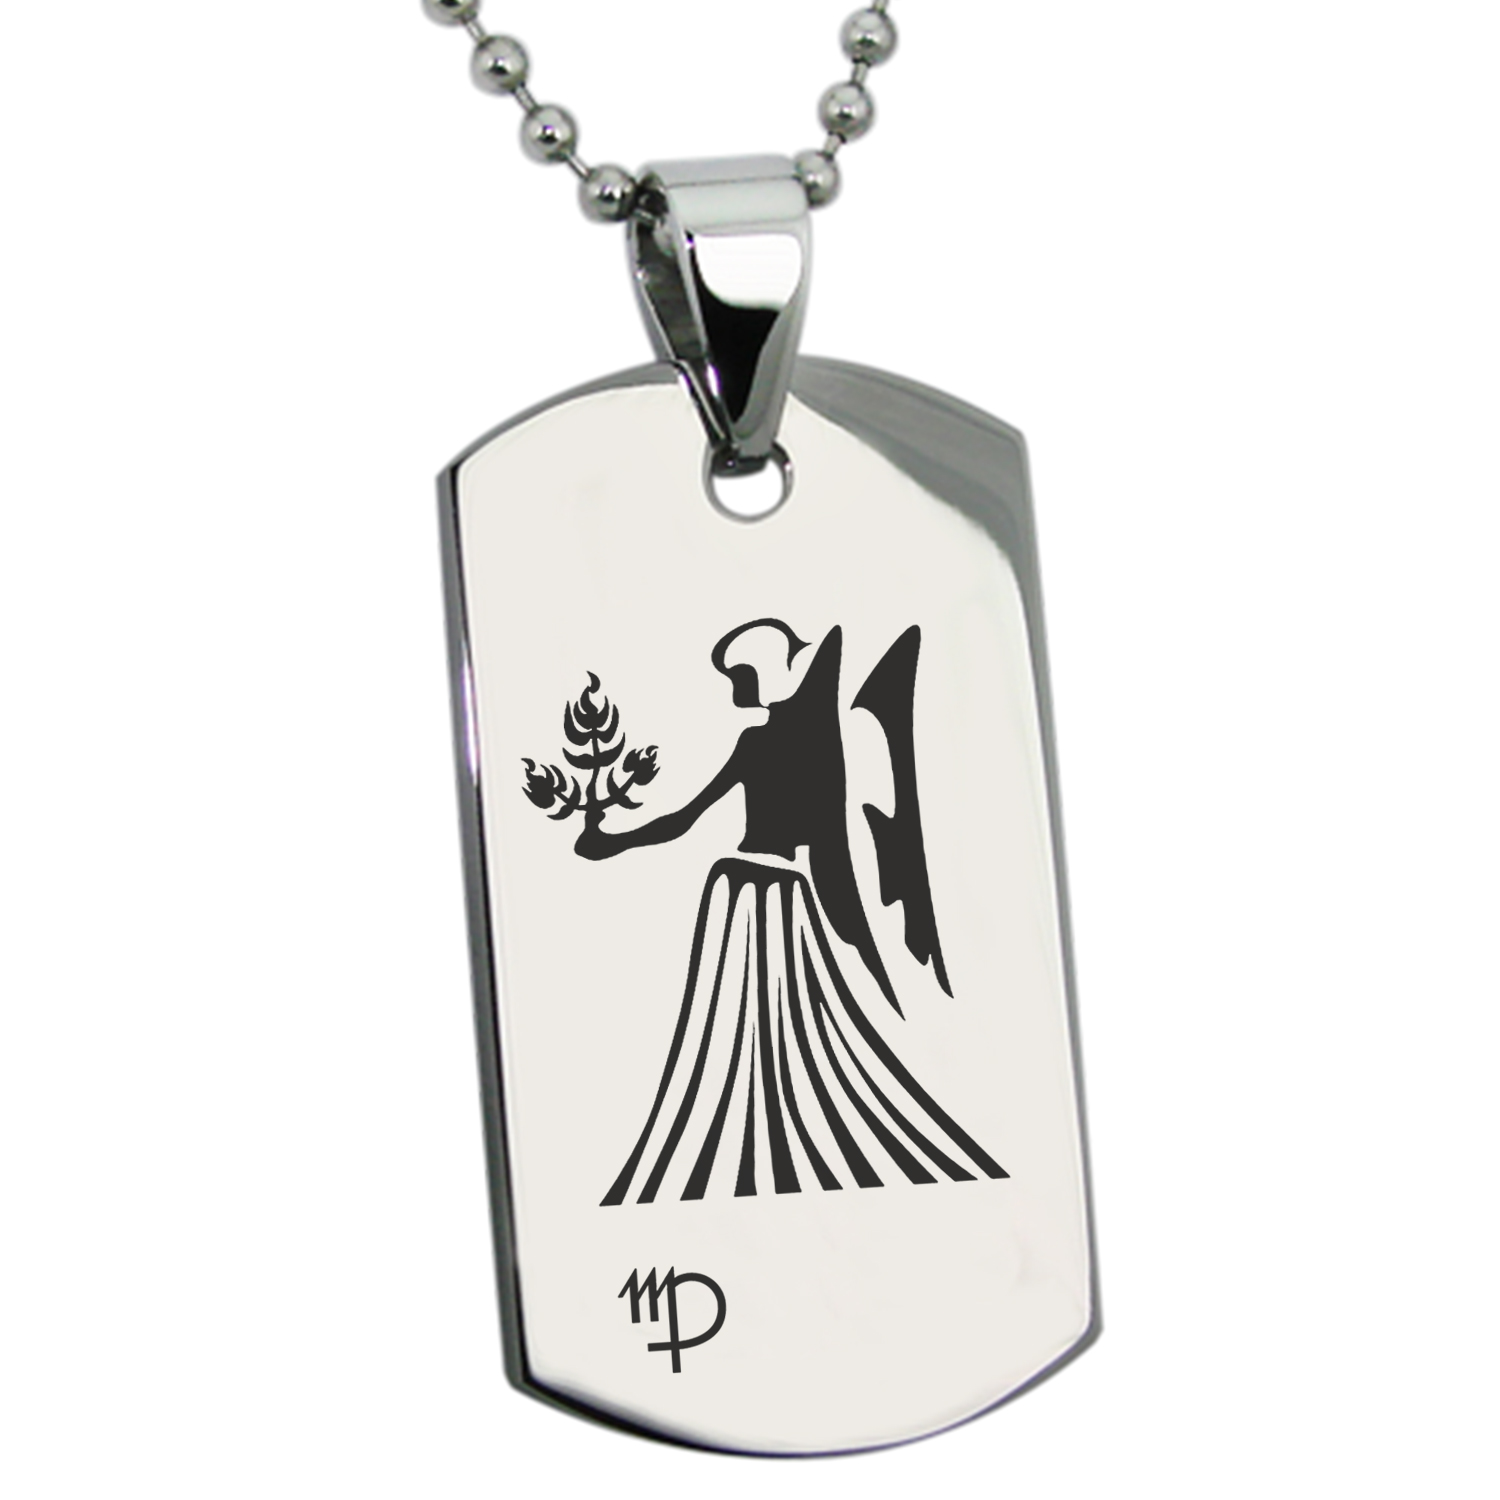 Stainless Steel Virgo Astrology Zodiac Sign Engraved Dog Tag Pendant